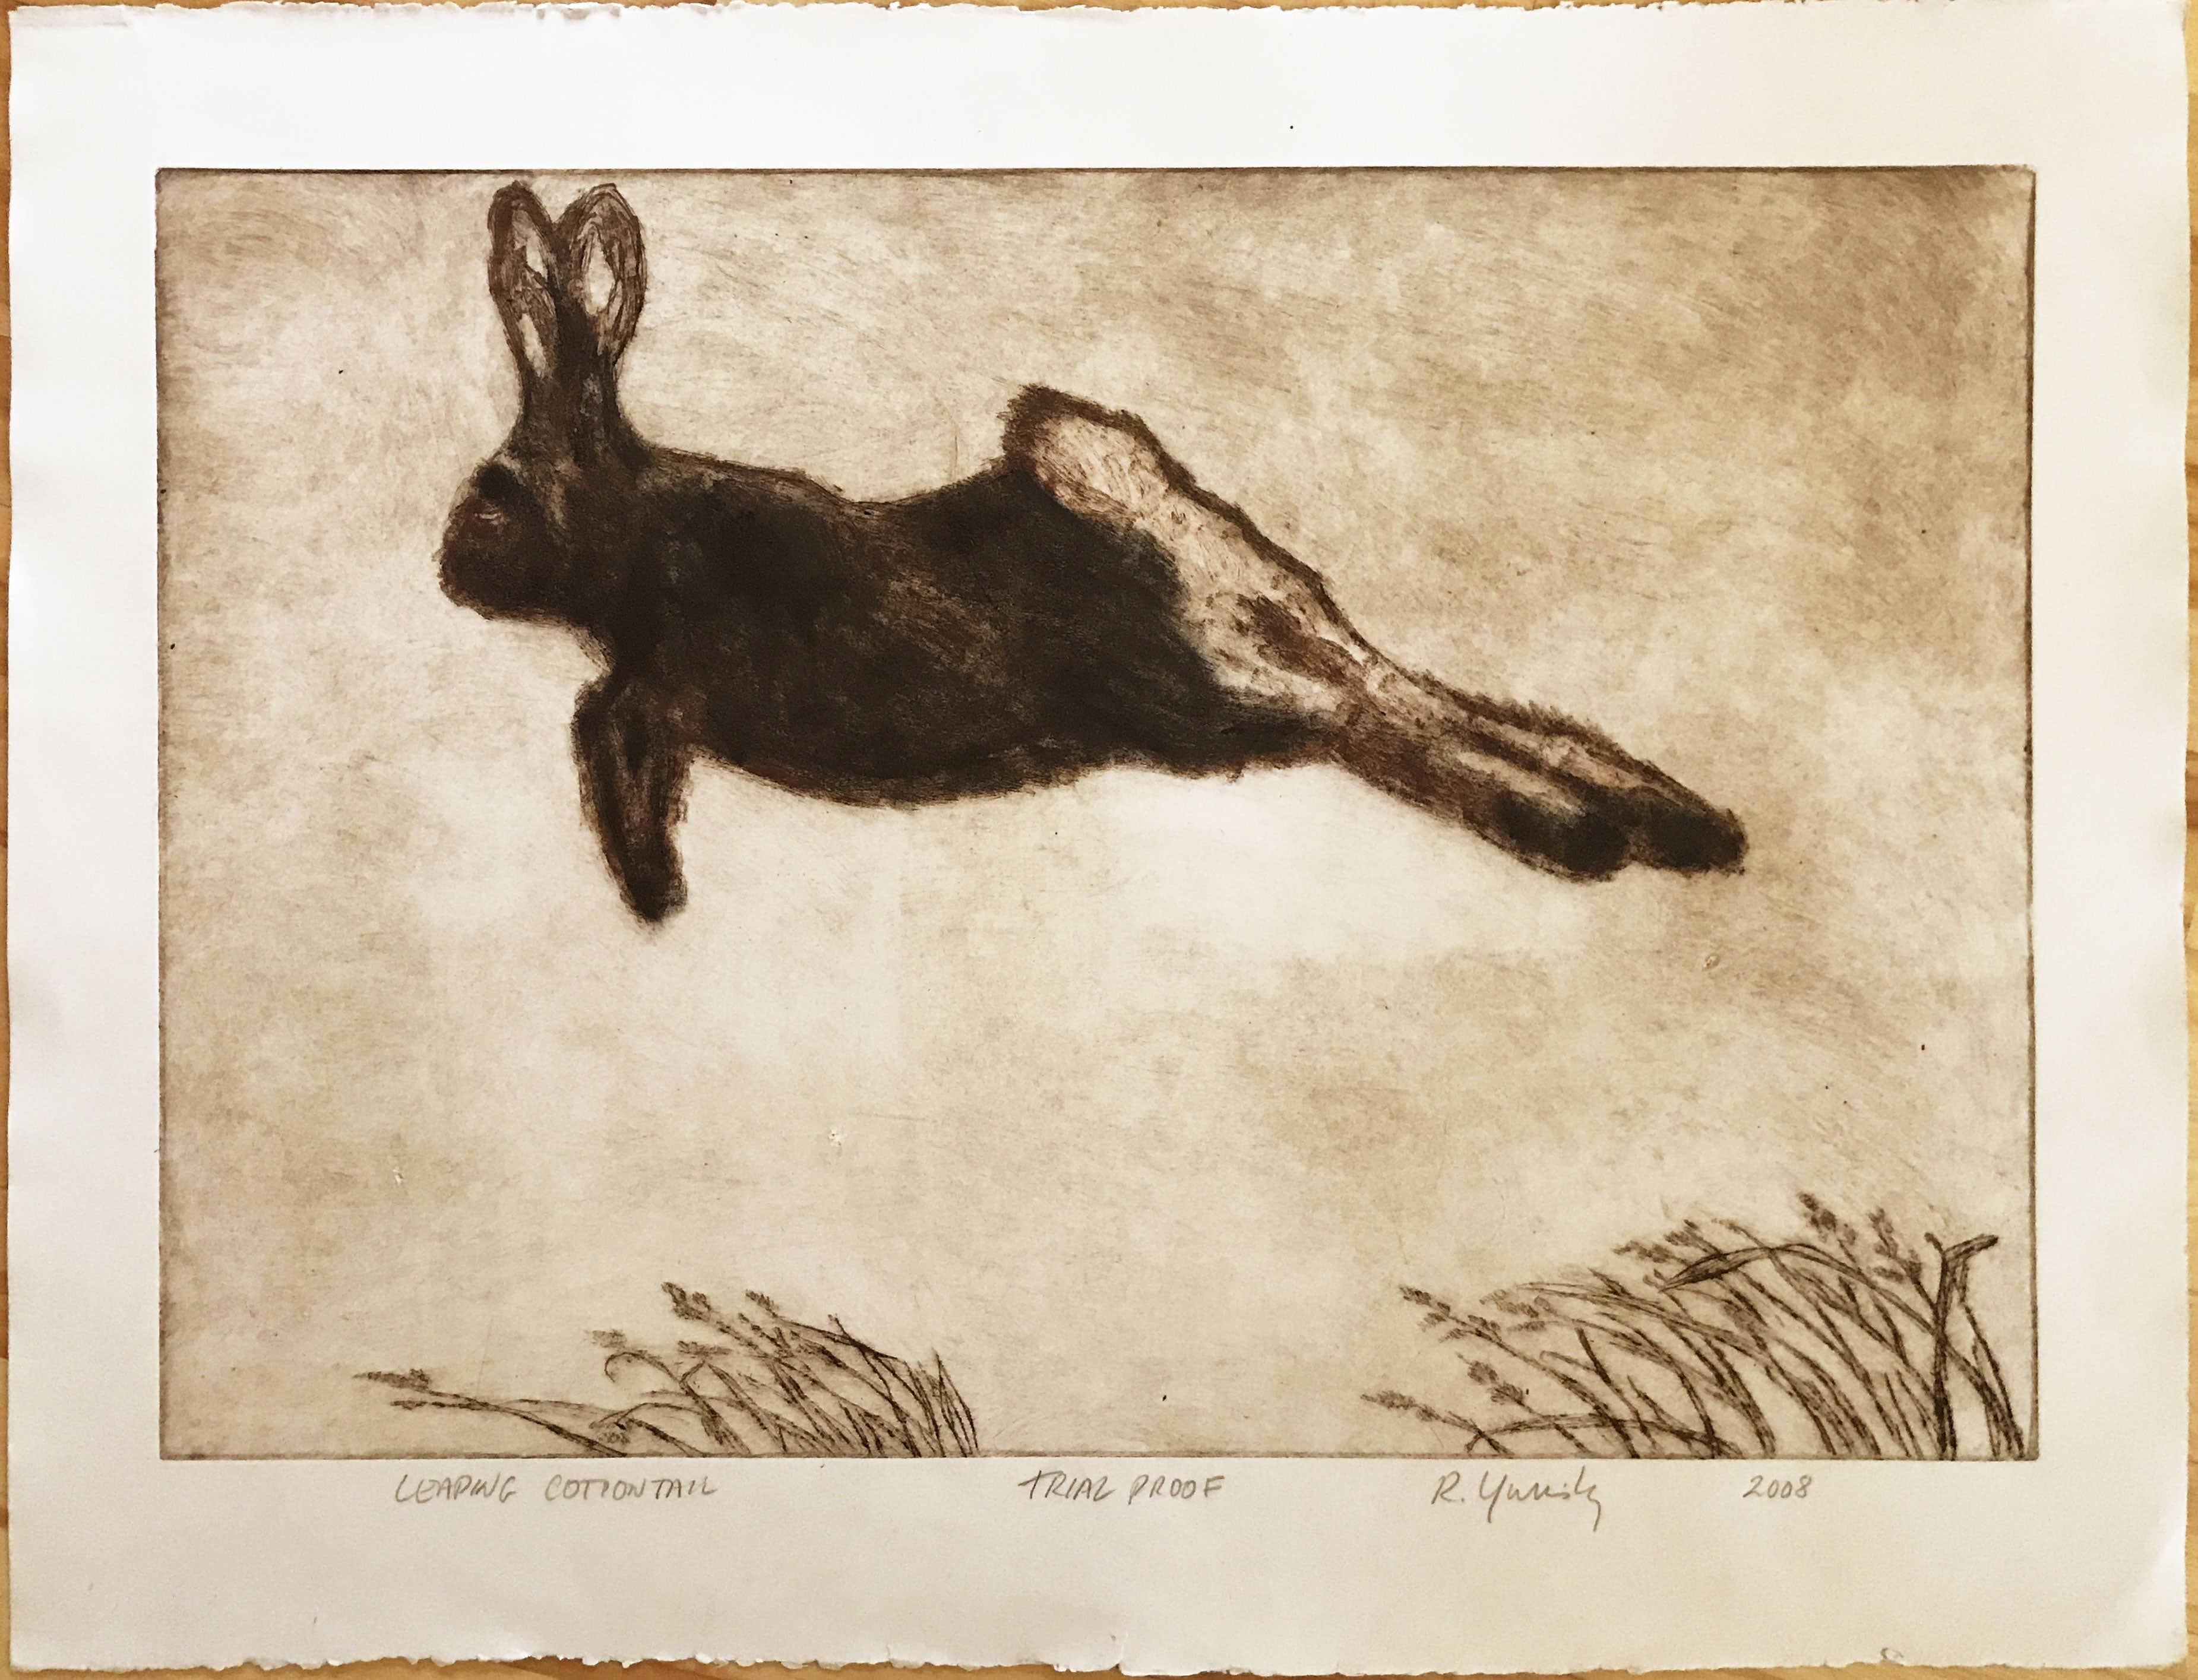 Leaping Cottontail (Brown and Black)